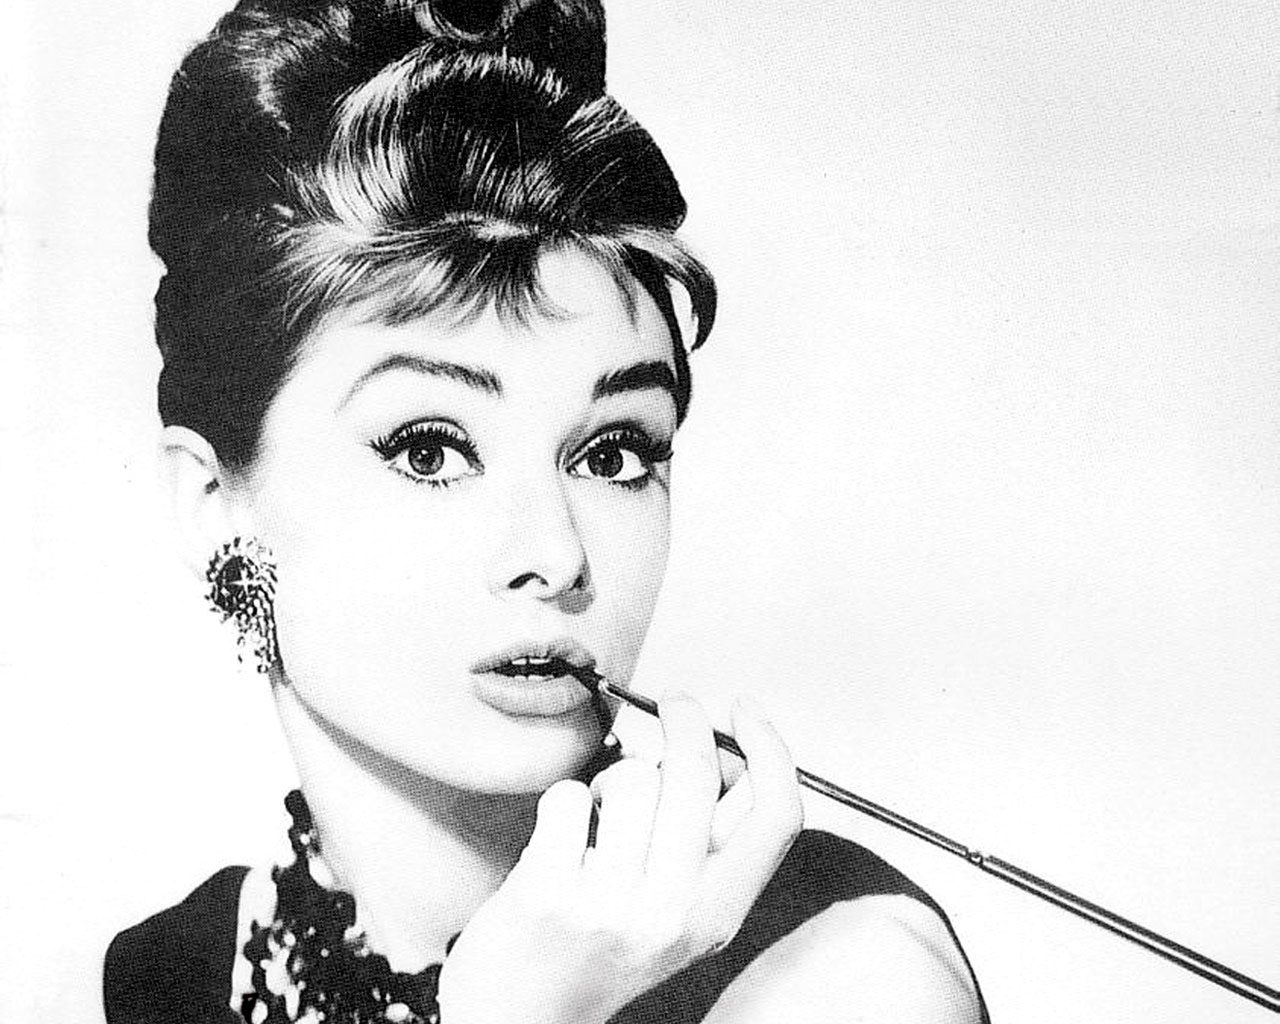 Audrey Hepburn in 1960s Sixties makeup